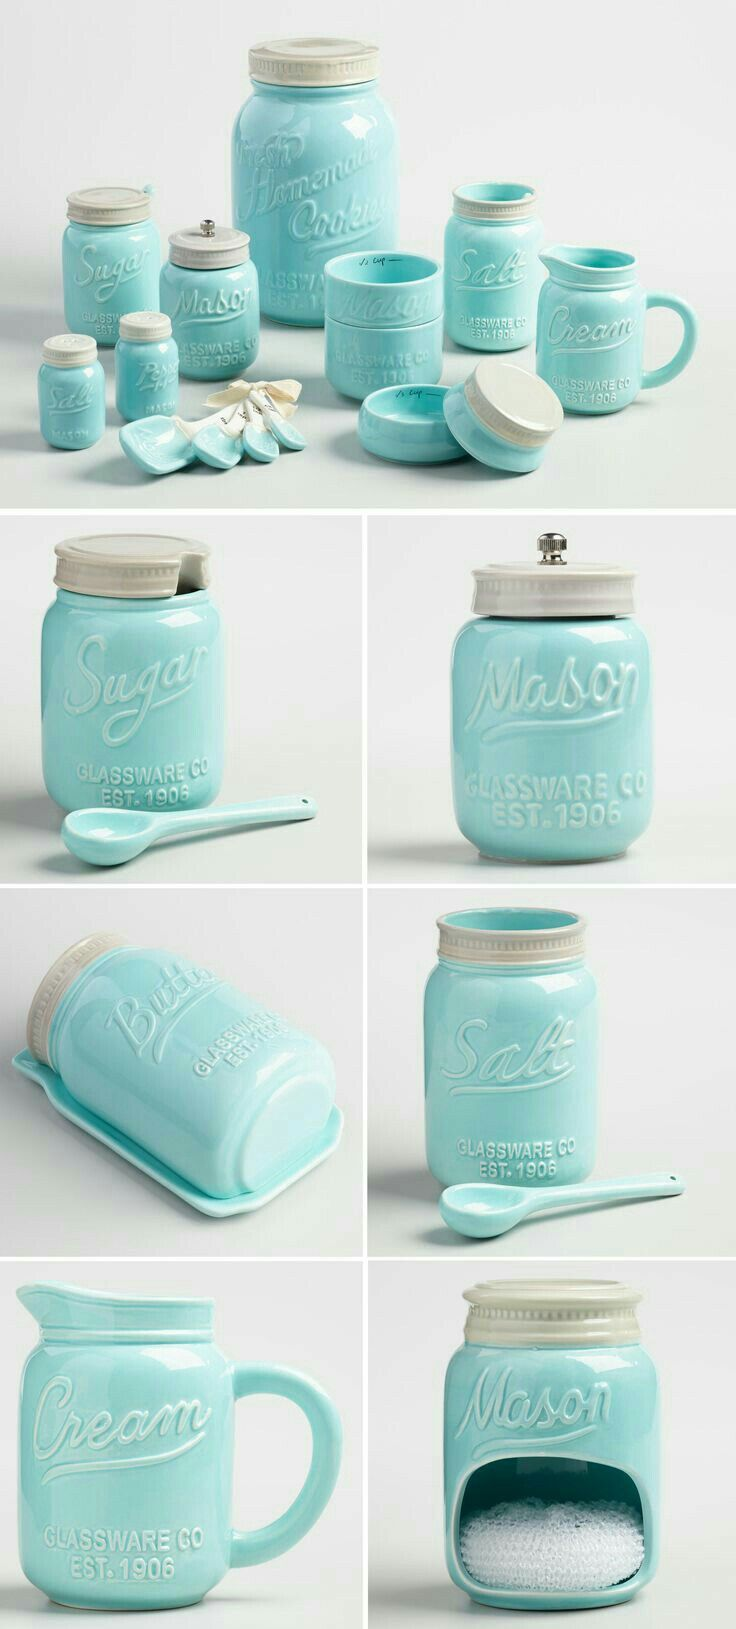 Turquoise Kitchen Decor Island Ideas For Small Kitchens High Tech Gadgets New Home Sweet Mason Jar Cabinets Tags Decorations Walls Accessories